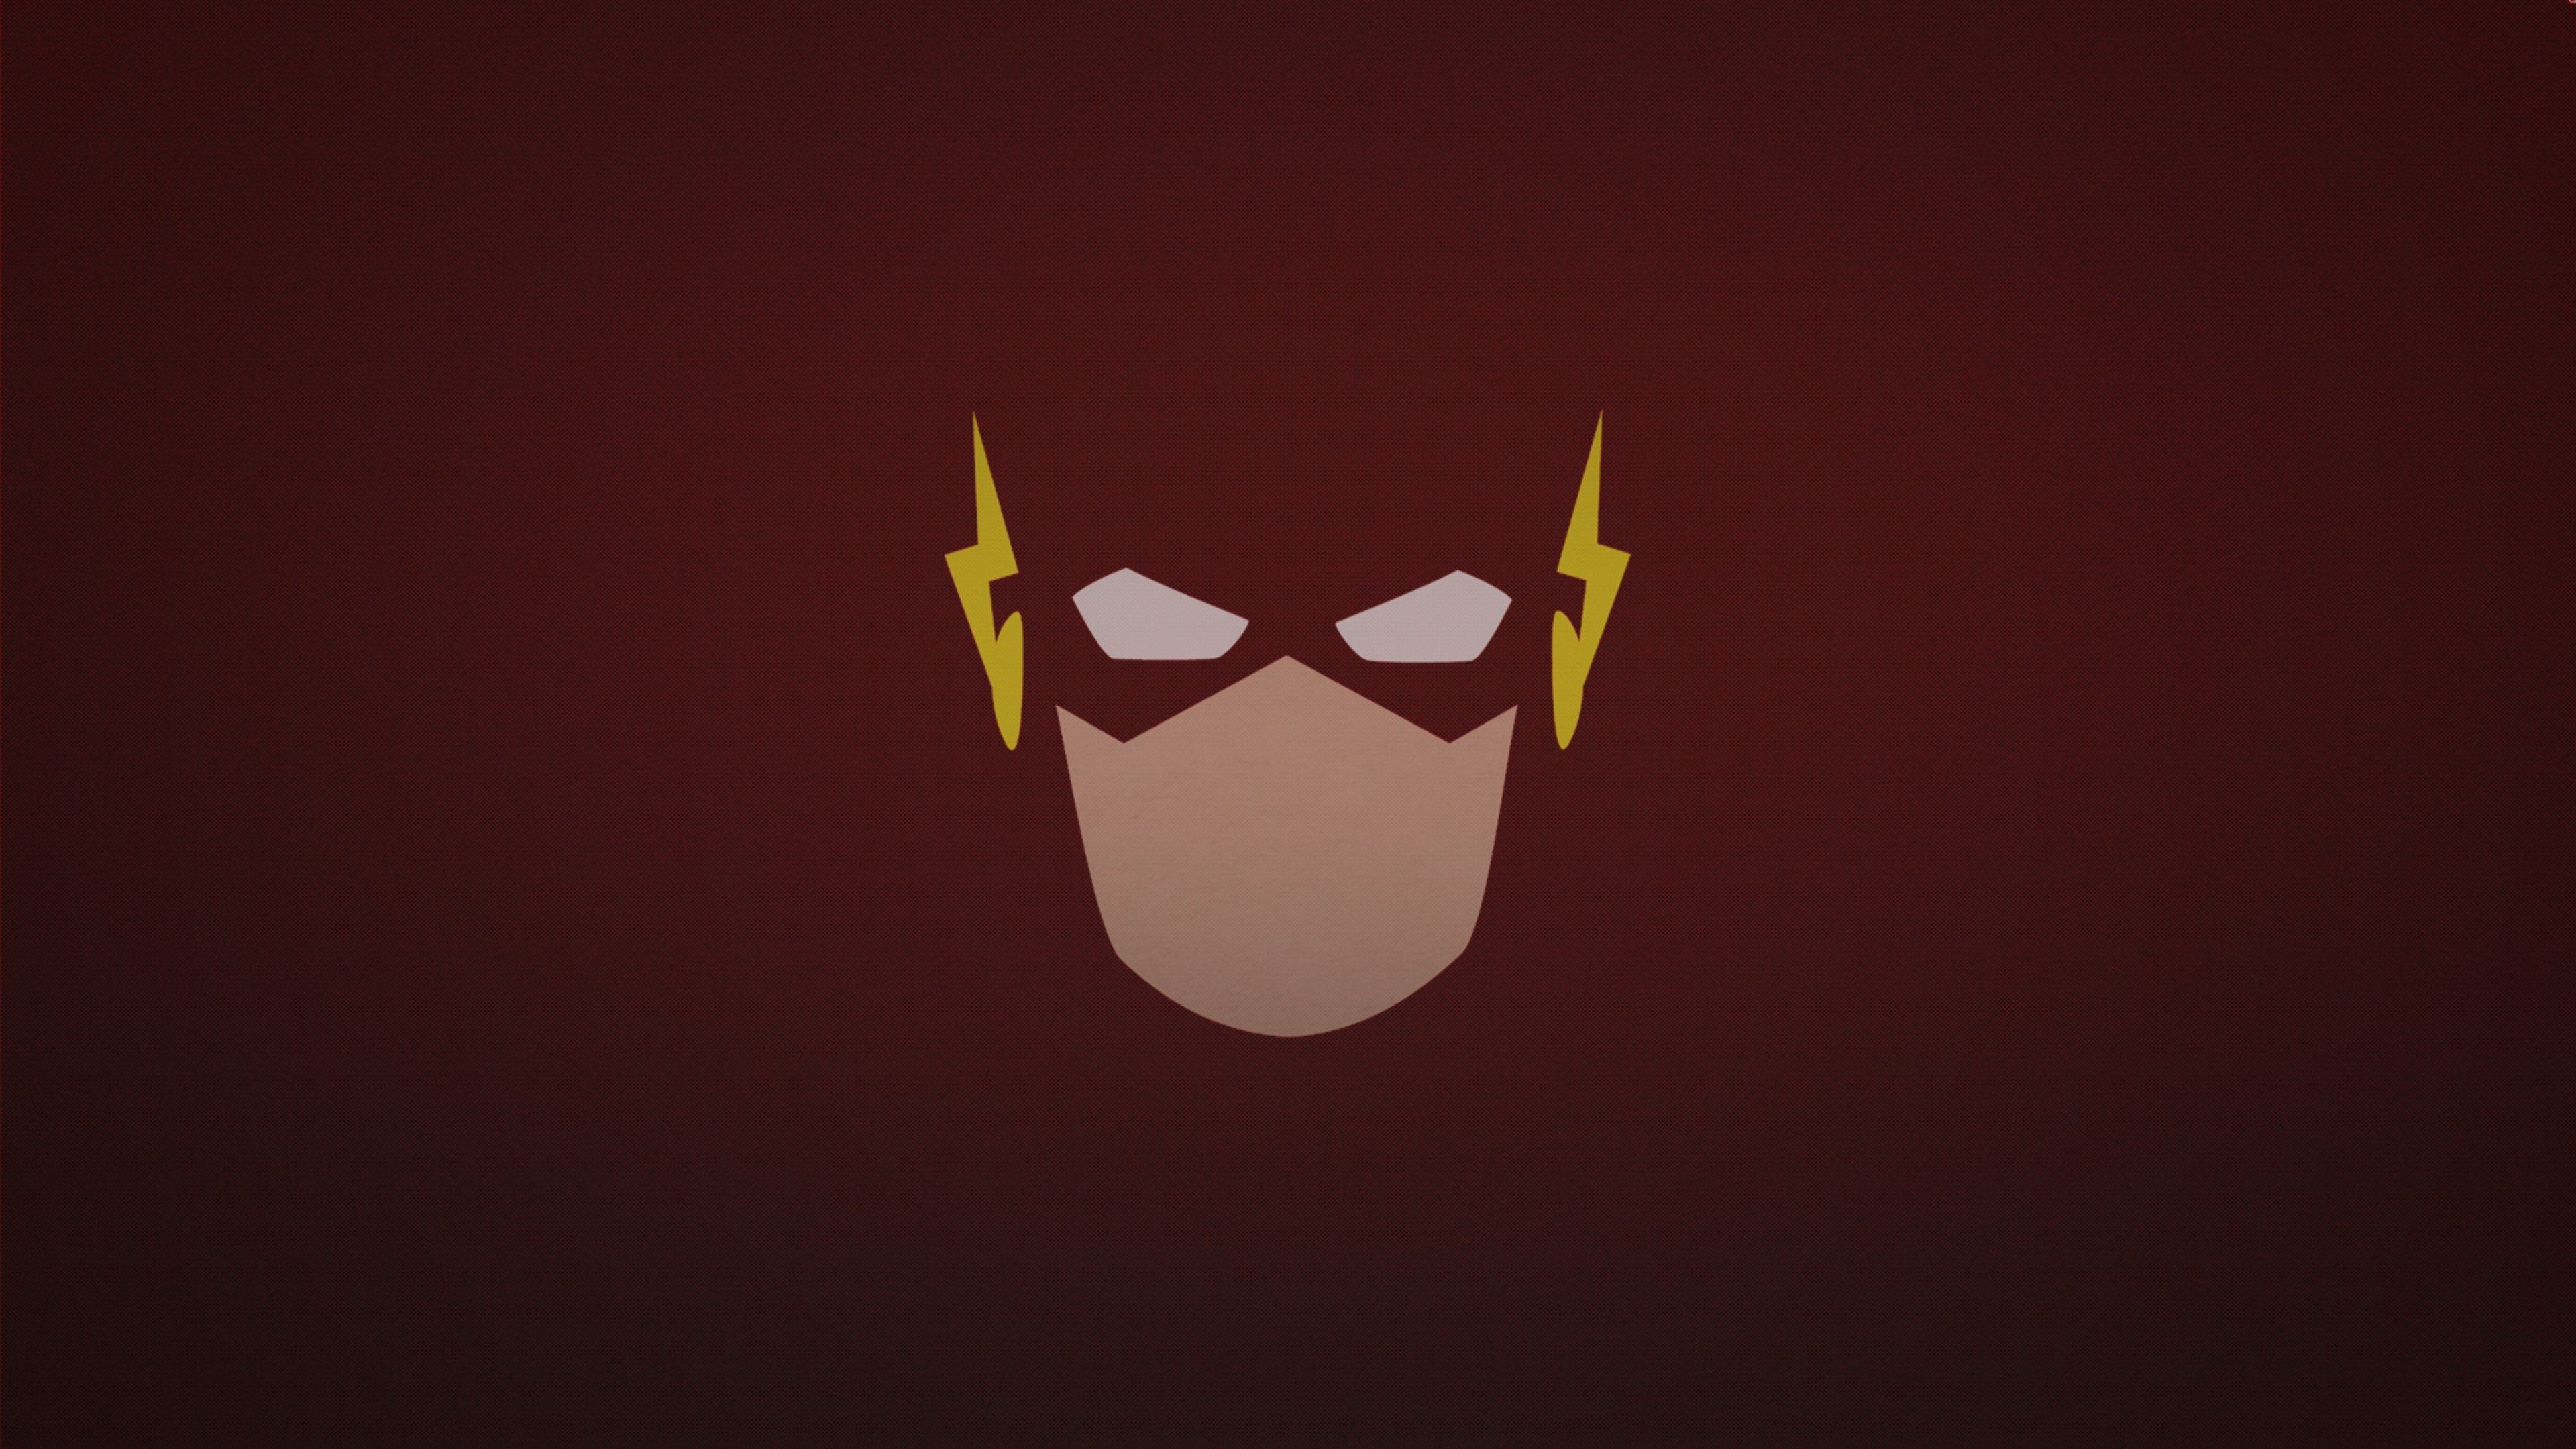 The Flash 4k Wallpapers Top Free The Flash 4k Backgrounds